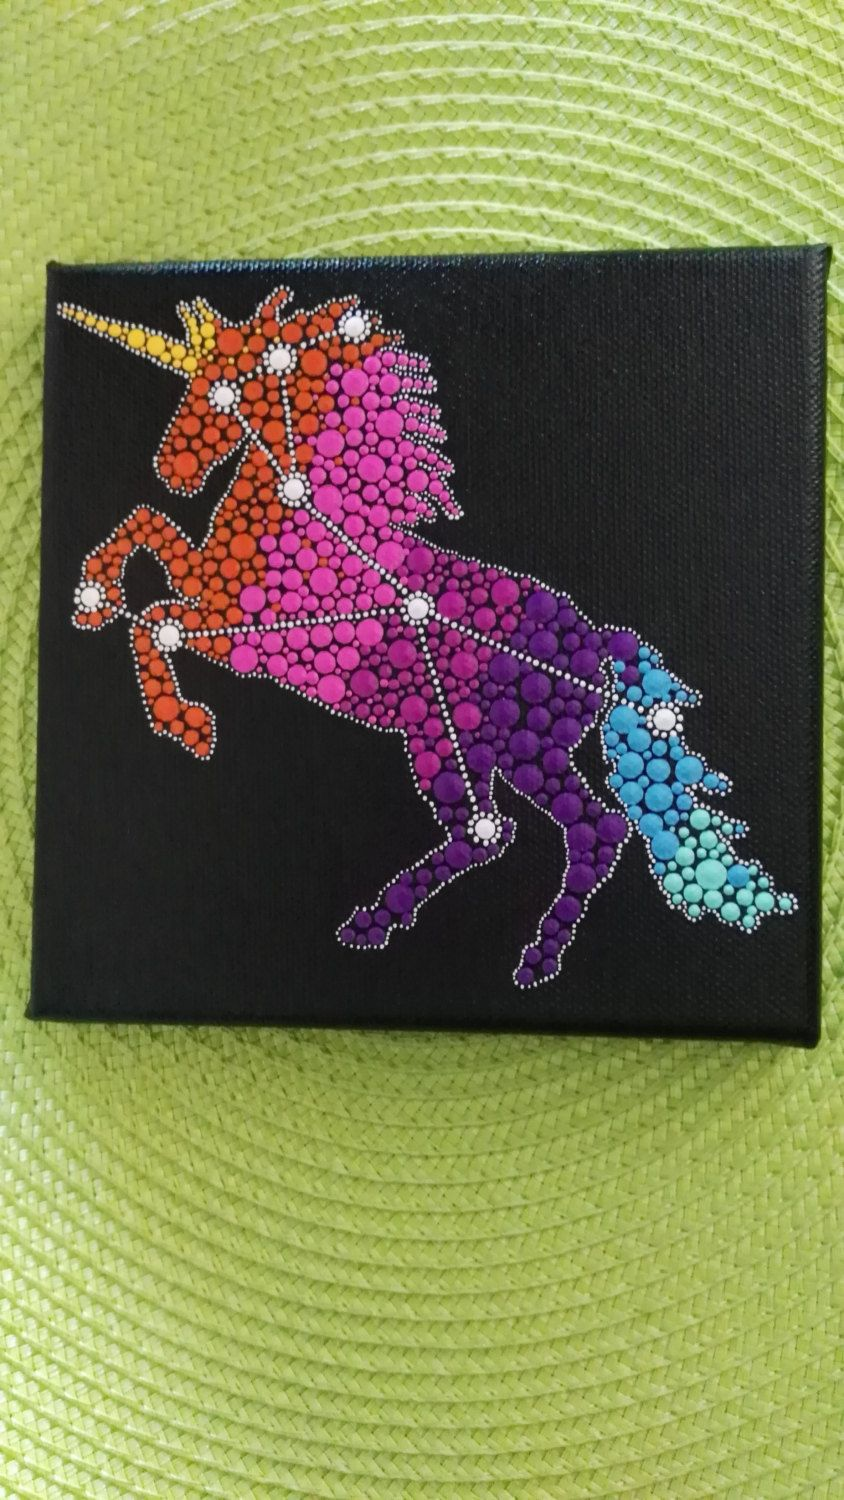 Original painting on canvas - Unicorn dot art painting 2- Constellation Monoceros-  Unicorn art - Unicorn silhouette by Mandalaole on Etsy